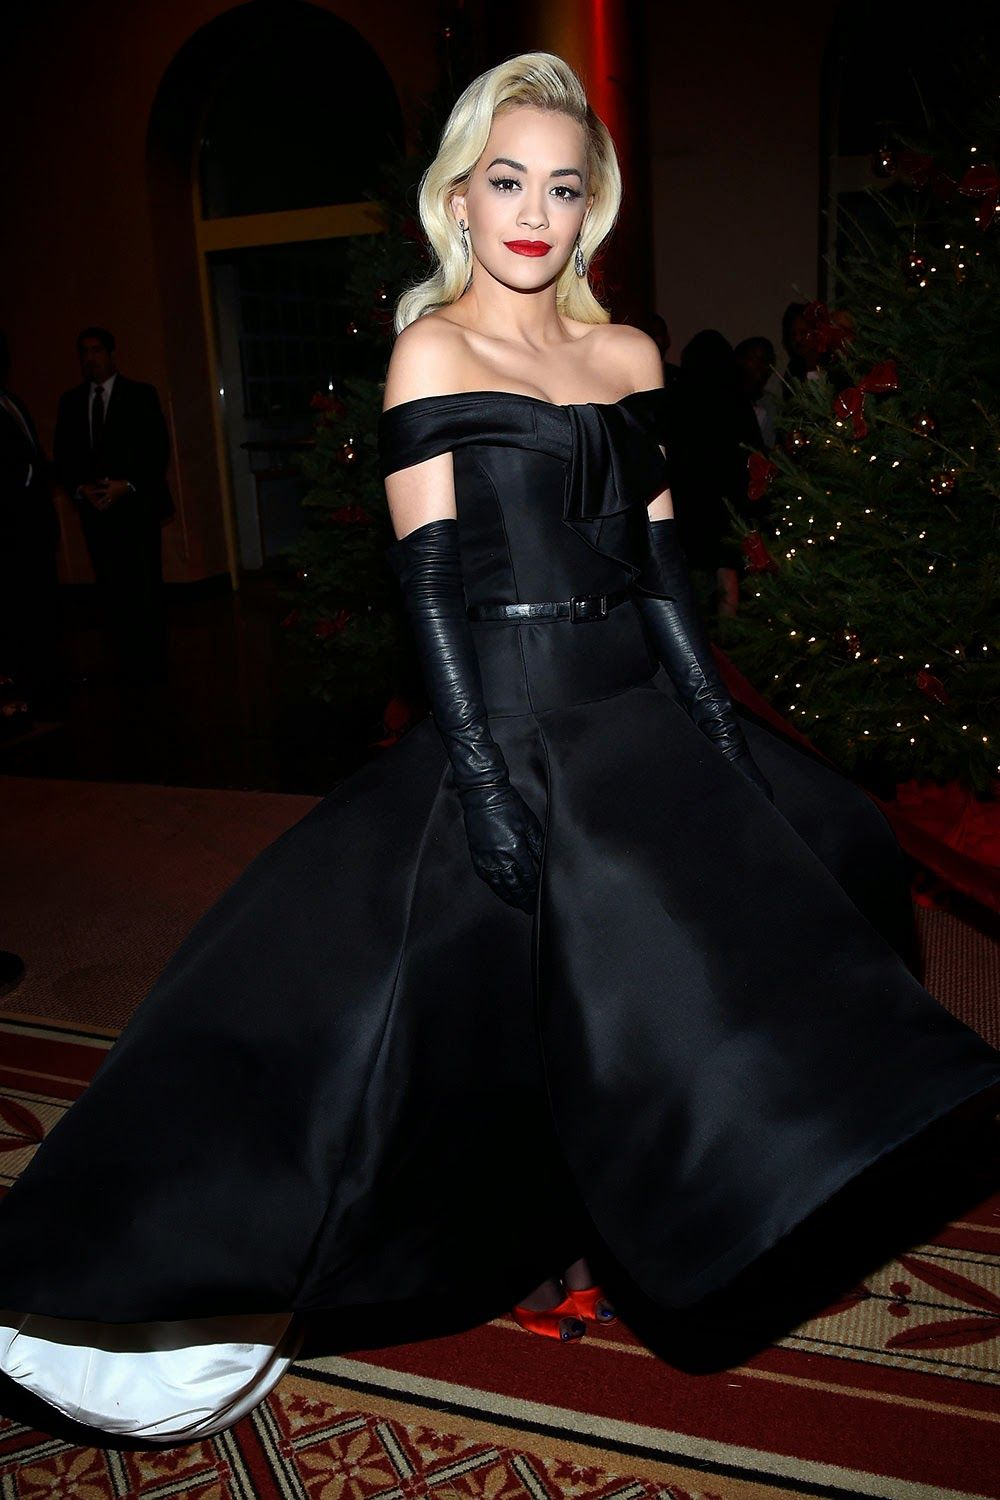 Black gloves for gown - Gloveglove Leather Leather Leather Blog Rita Ora Leather Gloves Black Gownsdesigner